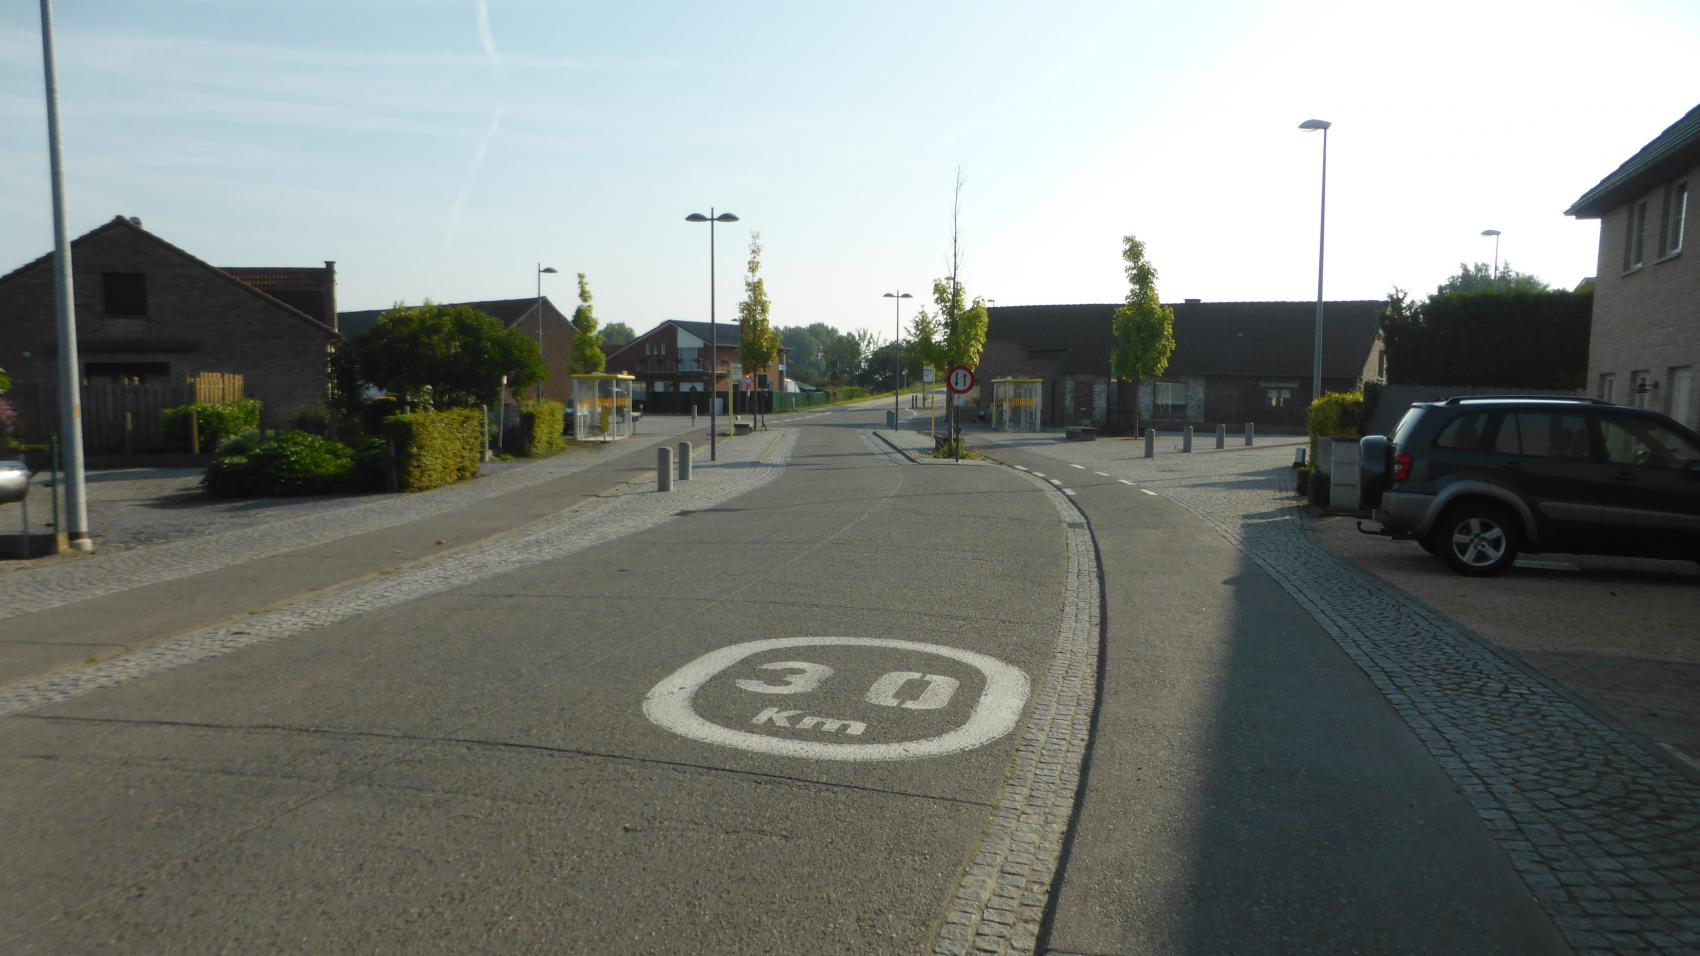 Bus stop Kerkstraat on Lodewijk van Veltemstraat in Beisem. Carriageway narrowed to one lane to provide extra space for passengers entering or leaving the bus without interrupting the cycle traffic.